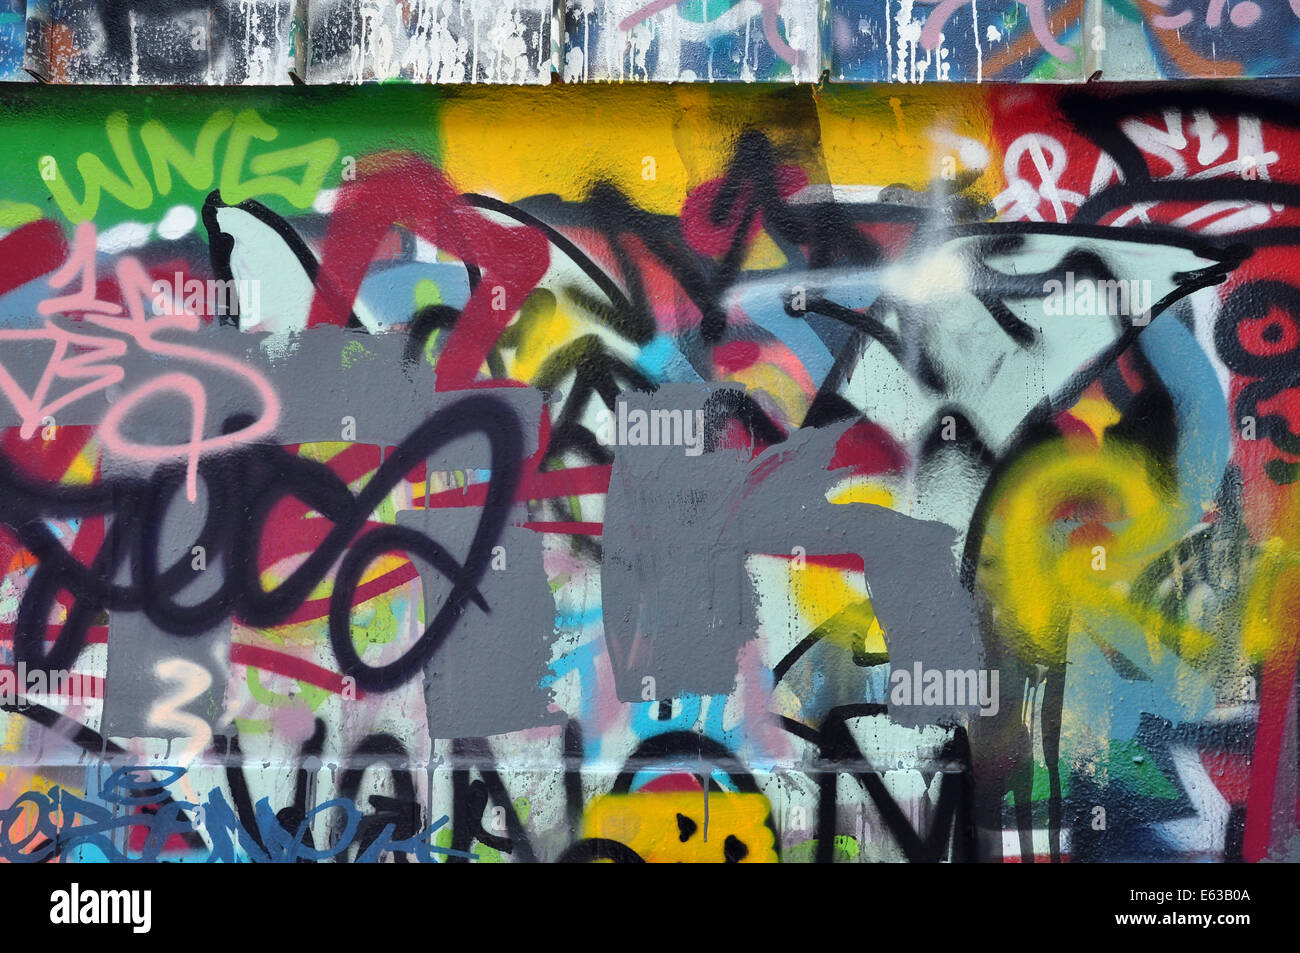 Textured wall covered with messy graffiti and tags abstract urban art background stock